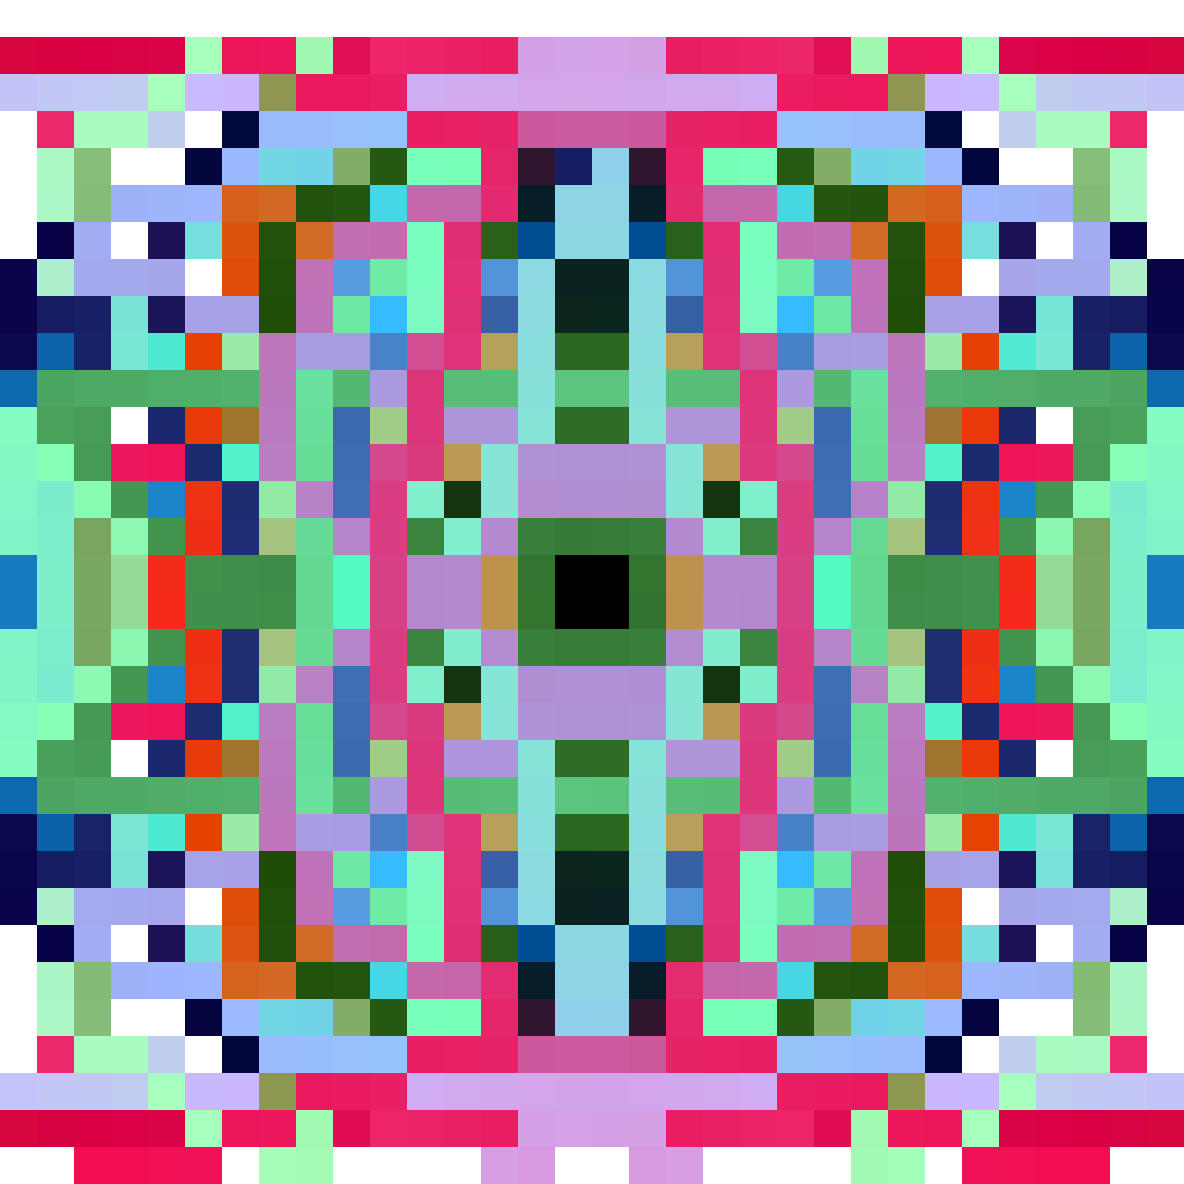 The all seeing eye by Isaach